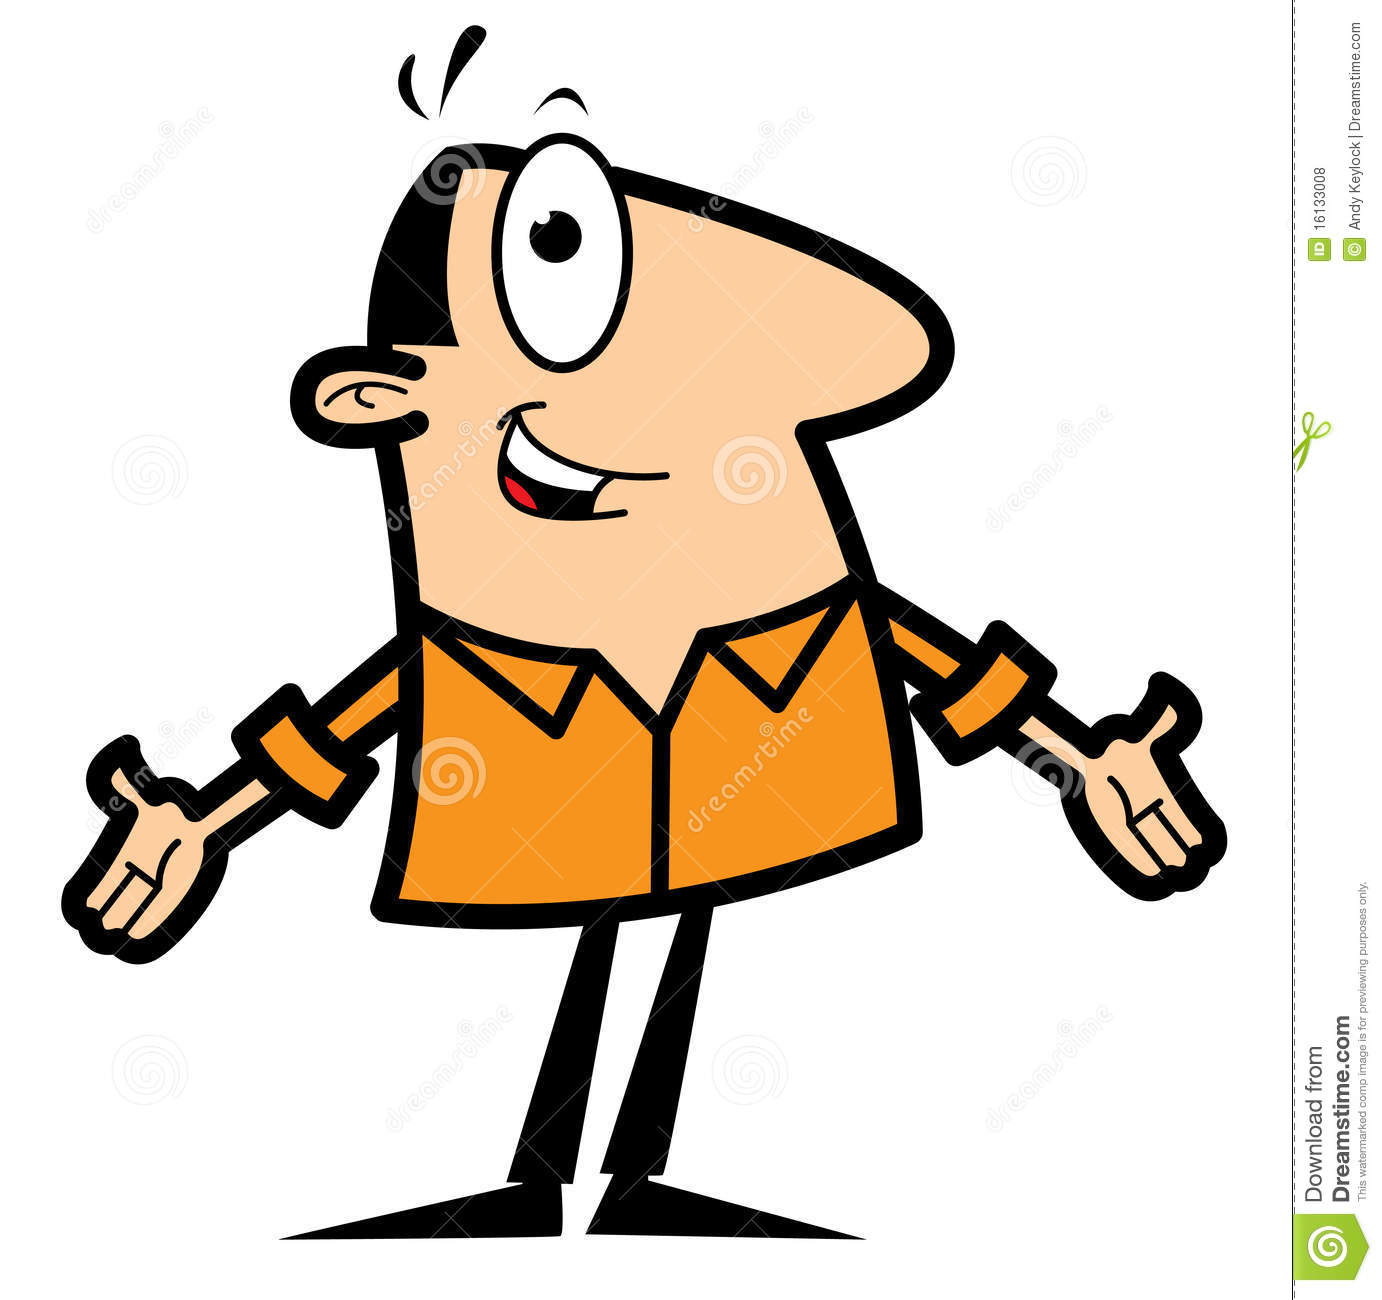 139744490 furthermore Stock Images D Person Financial Crisis Fall Illustration Falling Man Hit Downword Graph Arrow Concept Working Pressure Image31747244 furthermore Cat Trys To Think Outside The Box further Smelly animal in addition Lsd. on cartoon man tripping